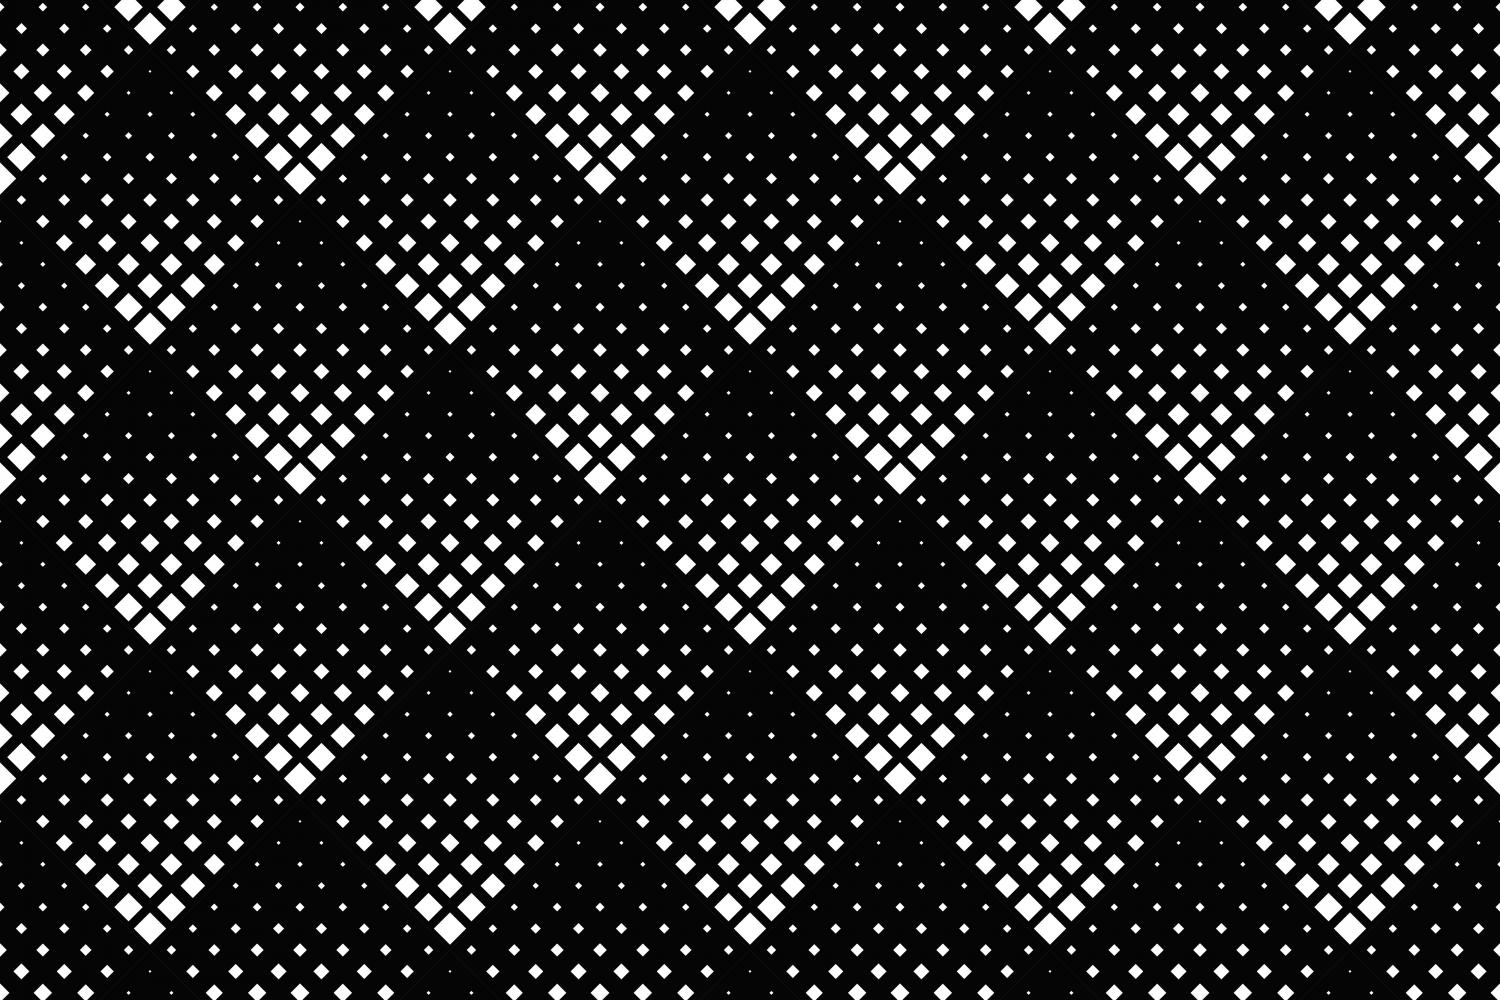 24 Seamless Square Patterns example image 12